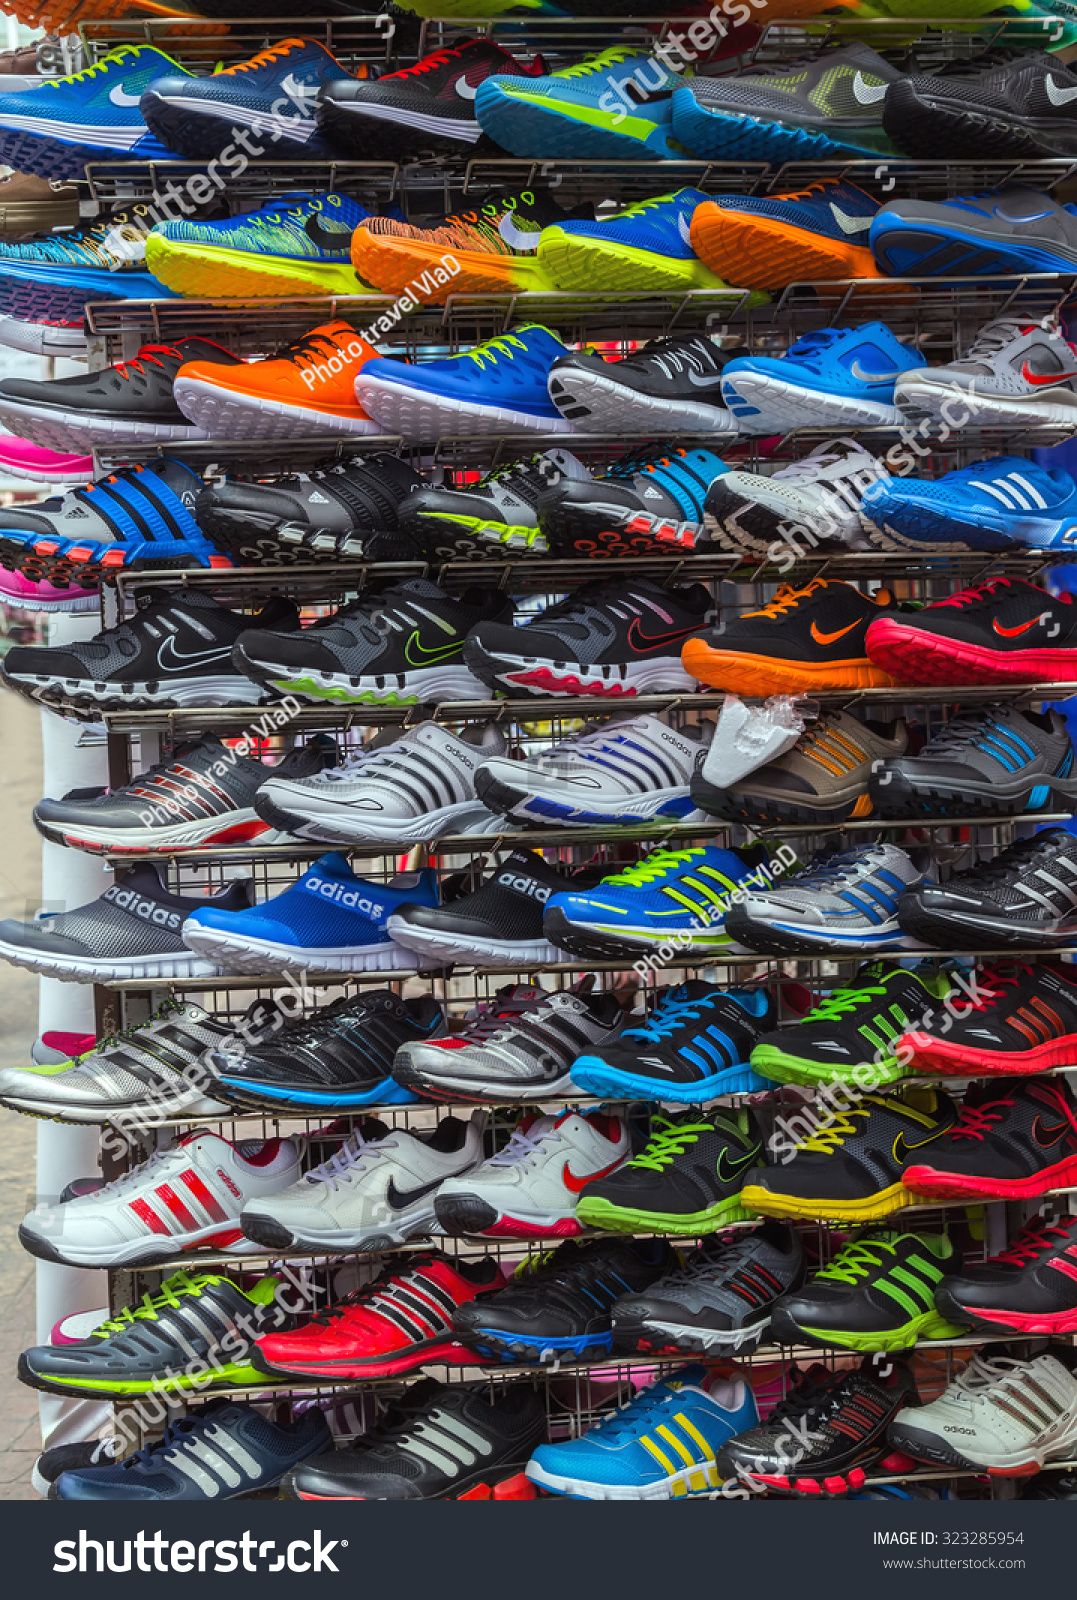 Adidas Shoes In Shoe Store Display and of Nike sport shoes. New unbranded  running shoe 6871a79fb